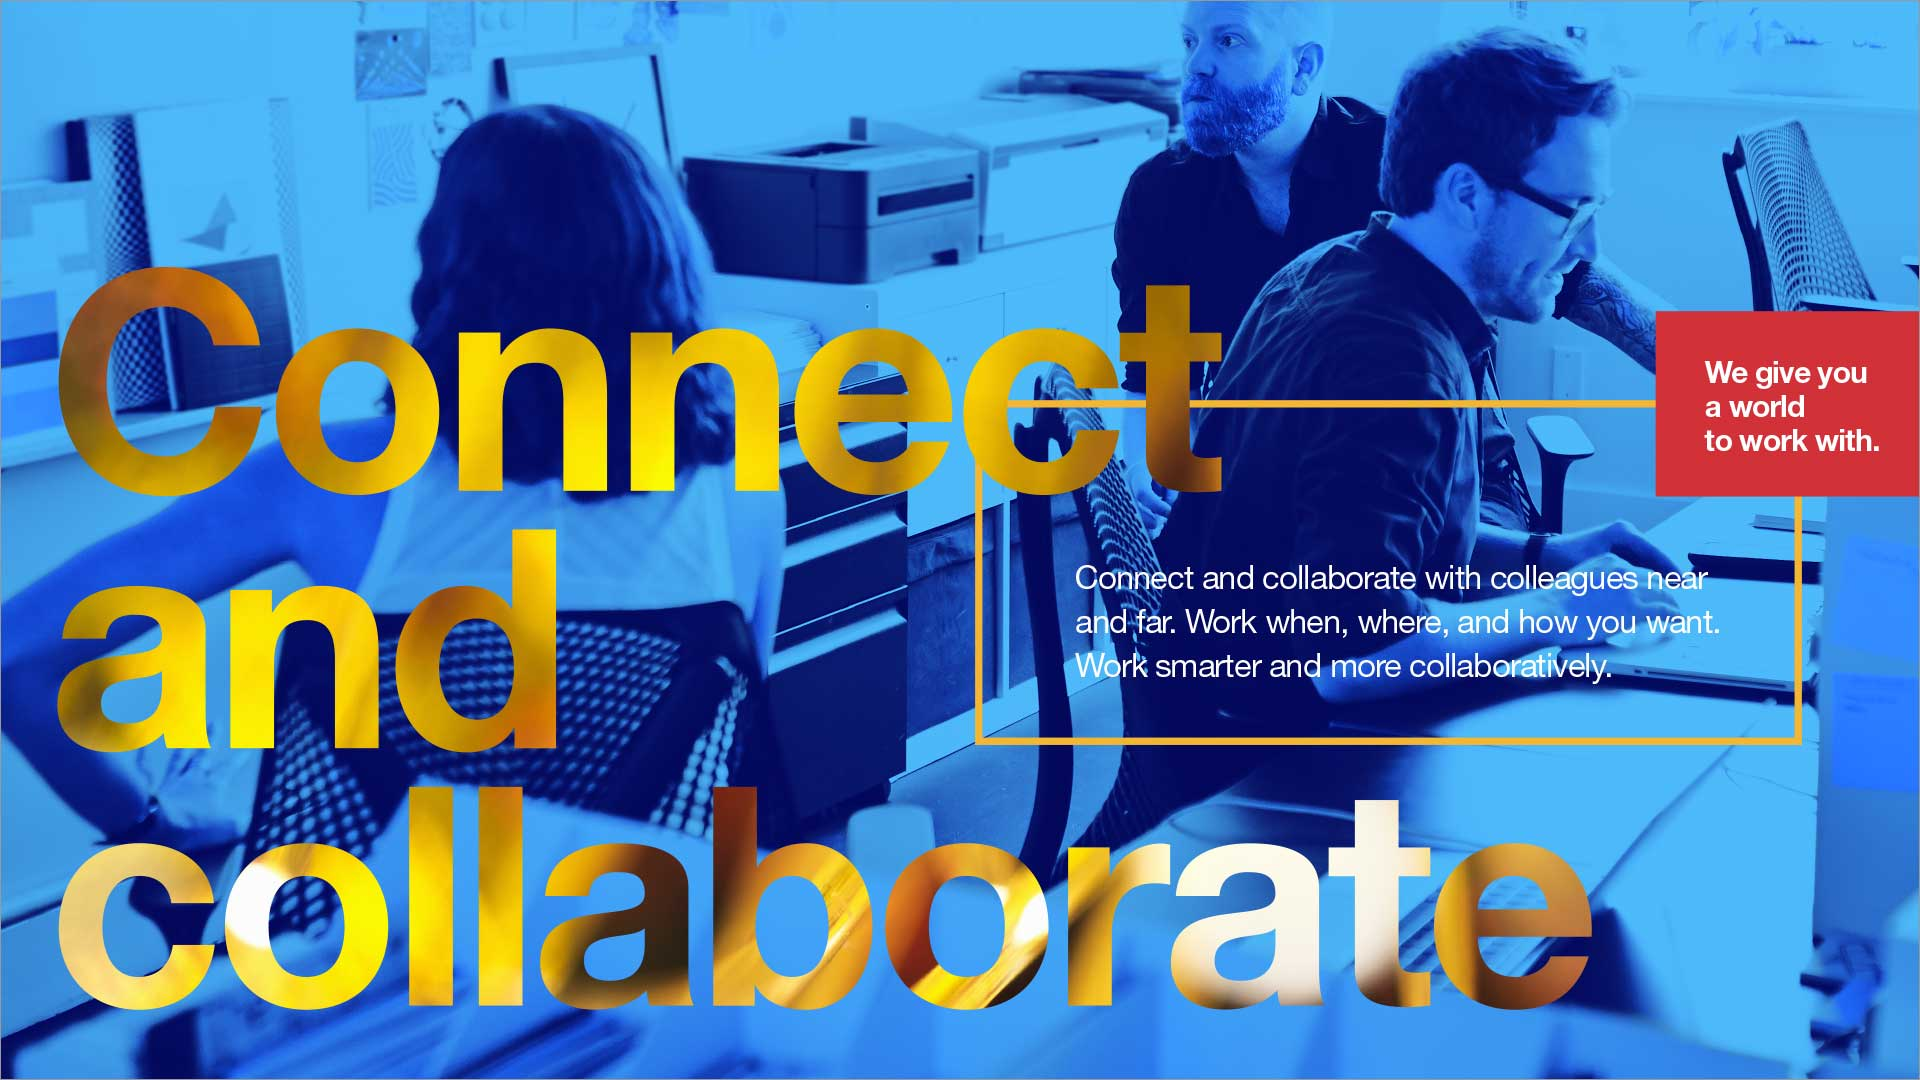 Connect and collaborate design concept. Avery Dennison employer brand. Team working in office. Big message. Bold color.